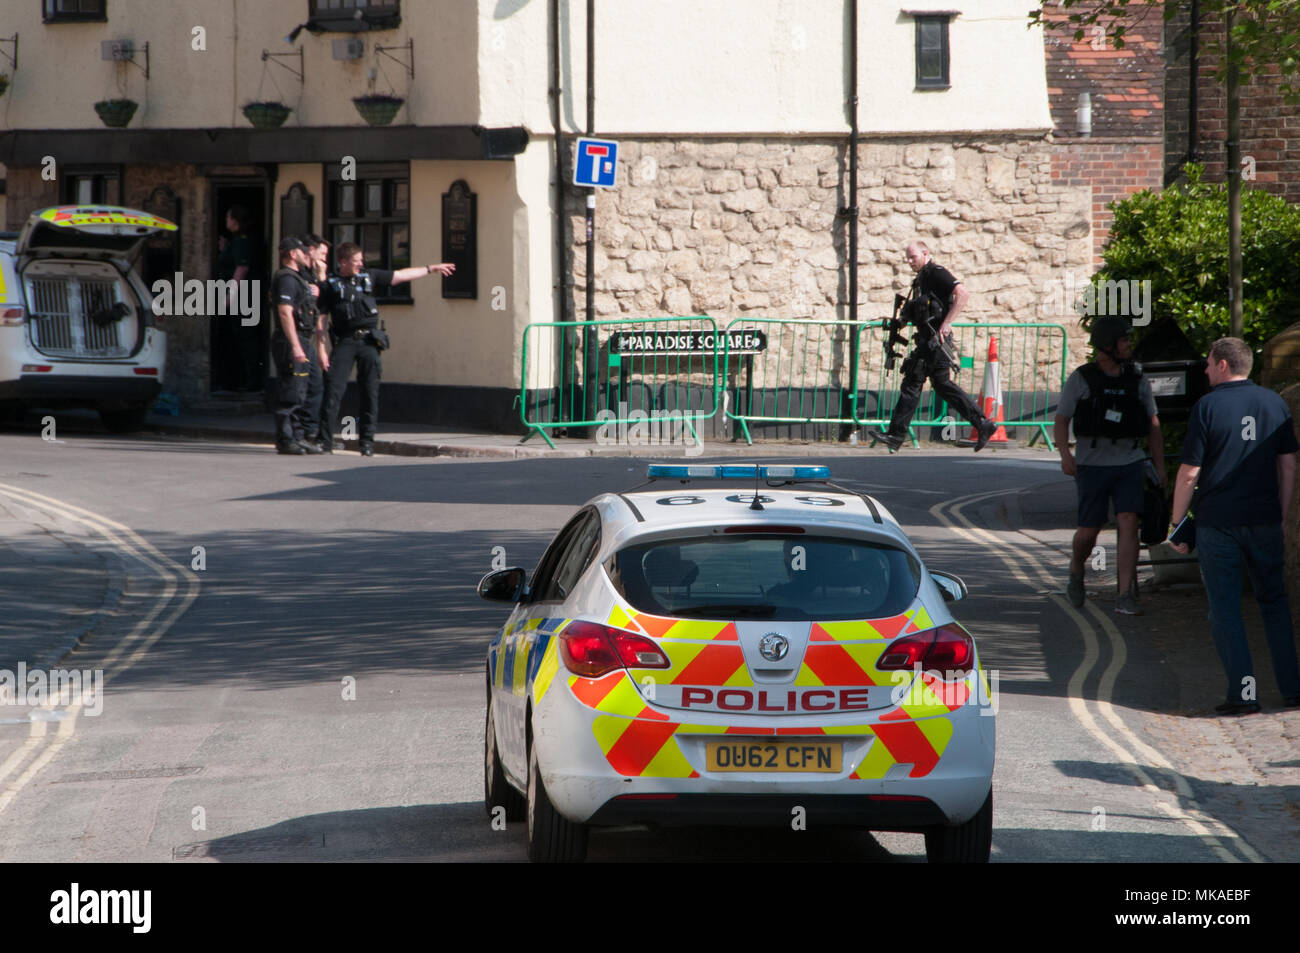 oxford-oxfordshire-uk-7th-may-2018-police-incident-in-central-oxford-credit-stanislav-halcinalamy-live-news-MKAEBF.jpg